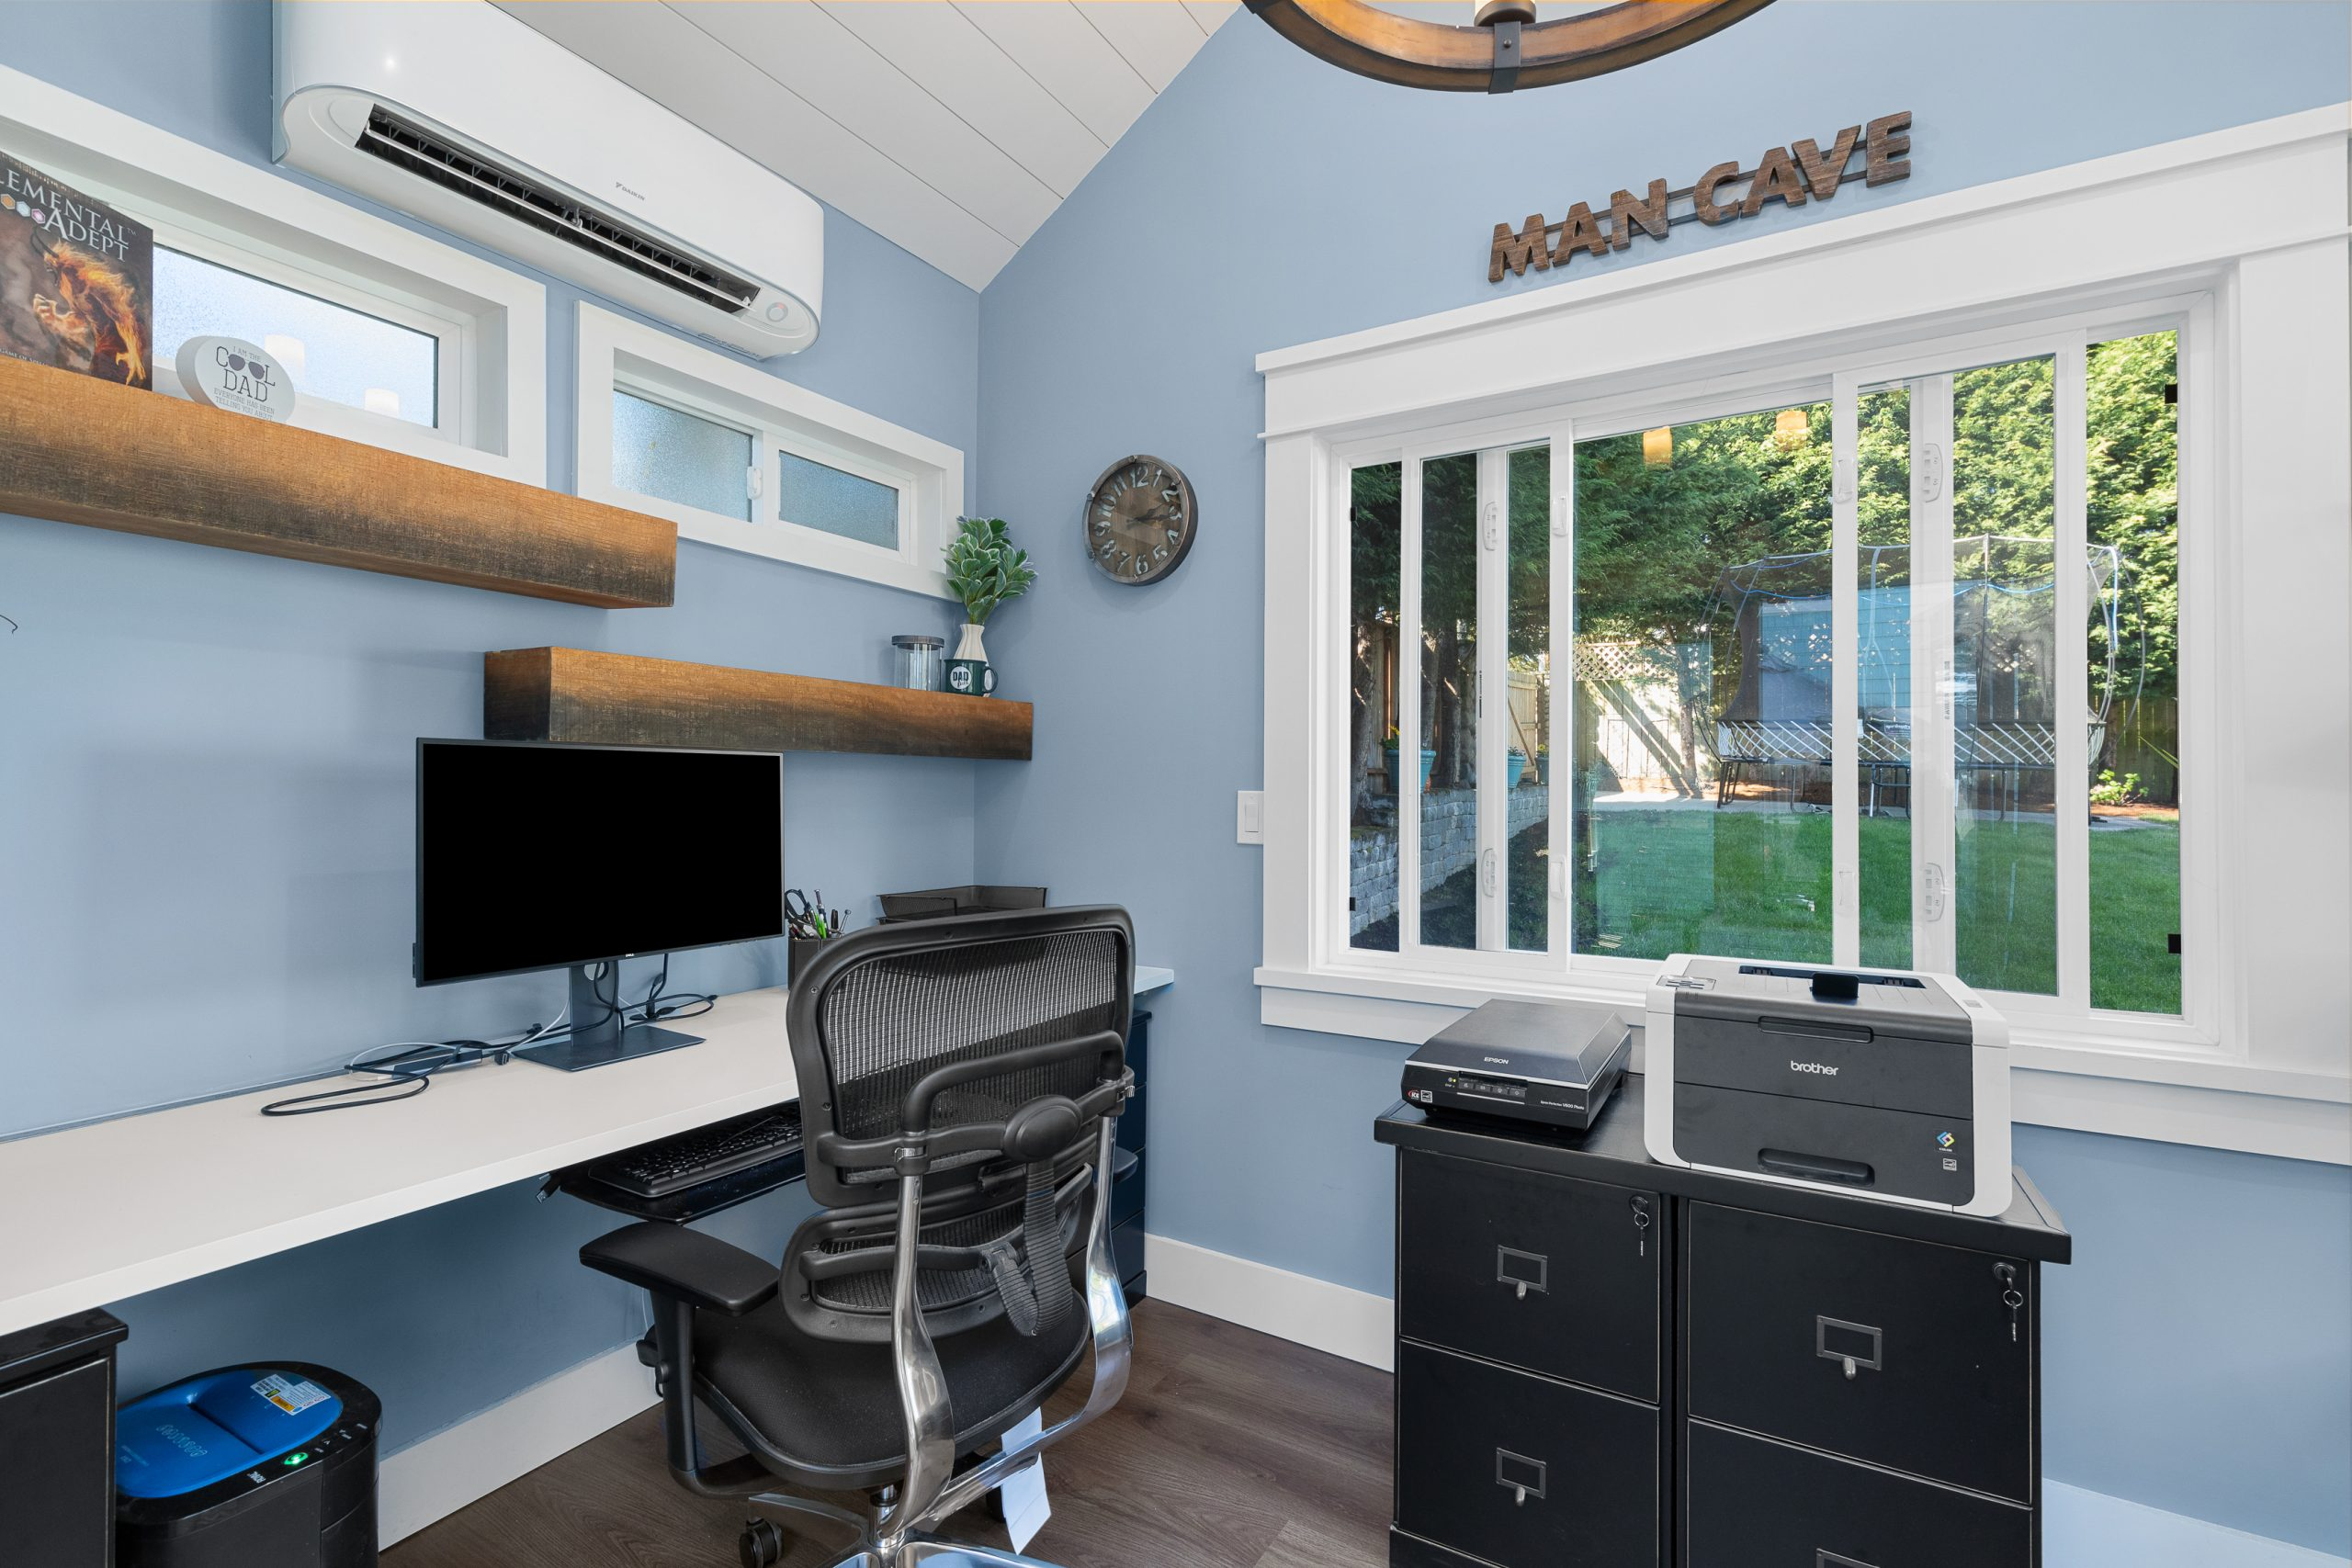 Home Office / Craft Room for Empty Nest